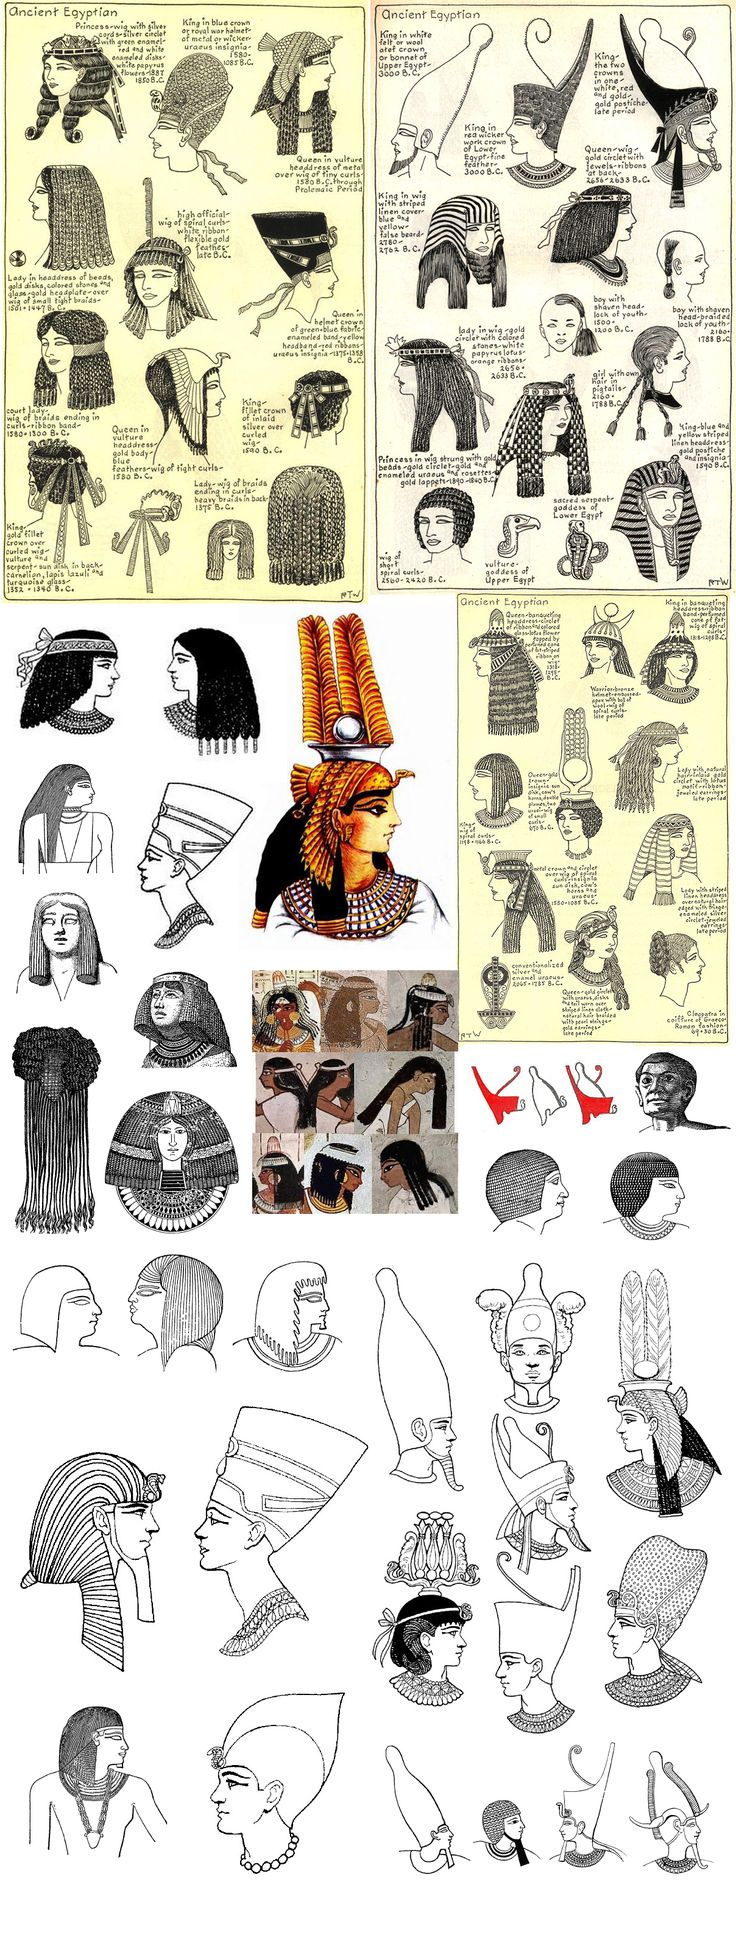 Cart clipart ancient civilization On Pinterest Pin on Egypt